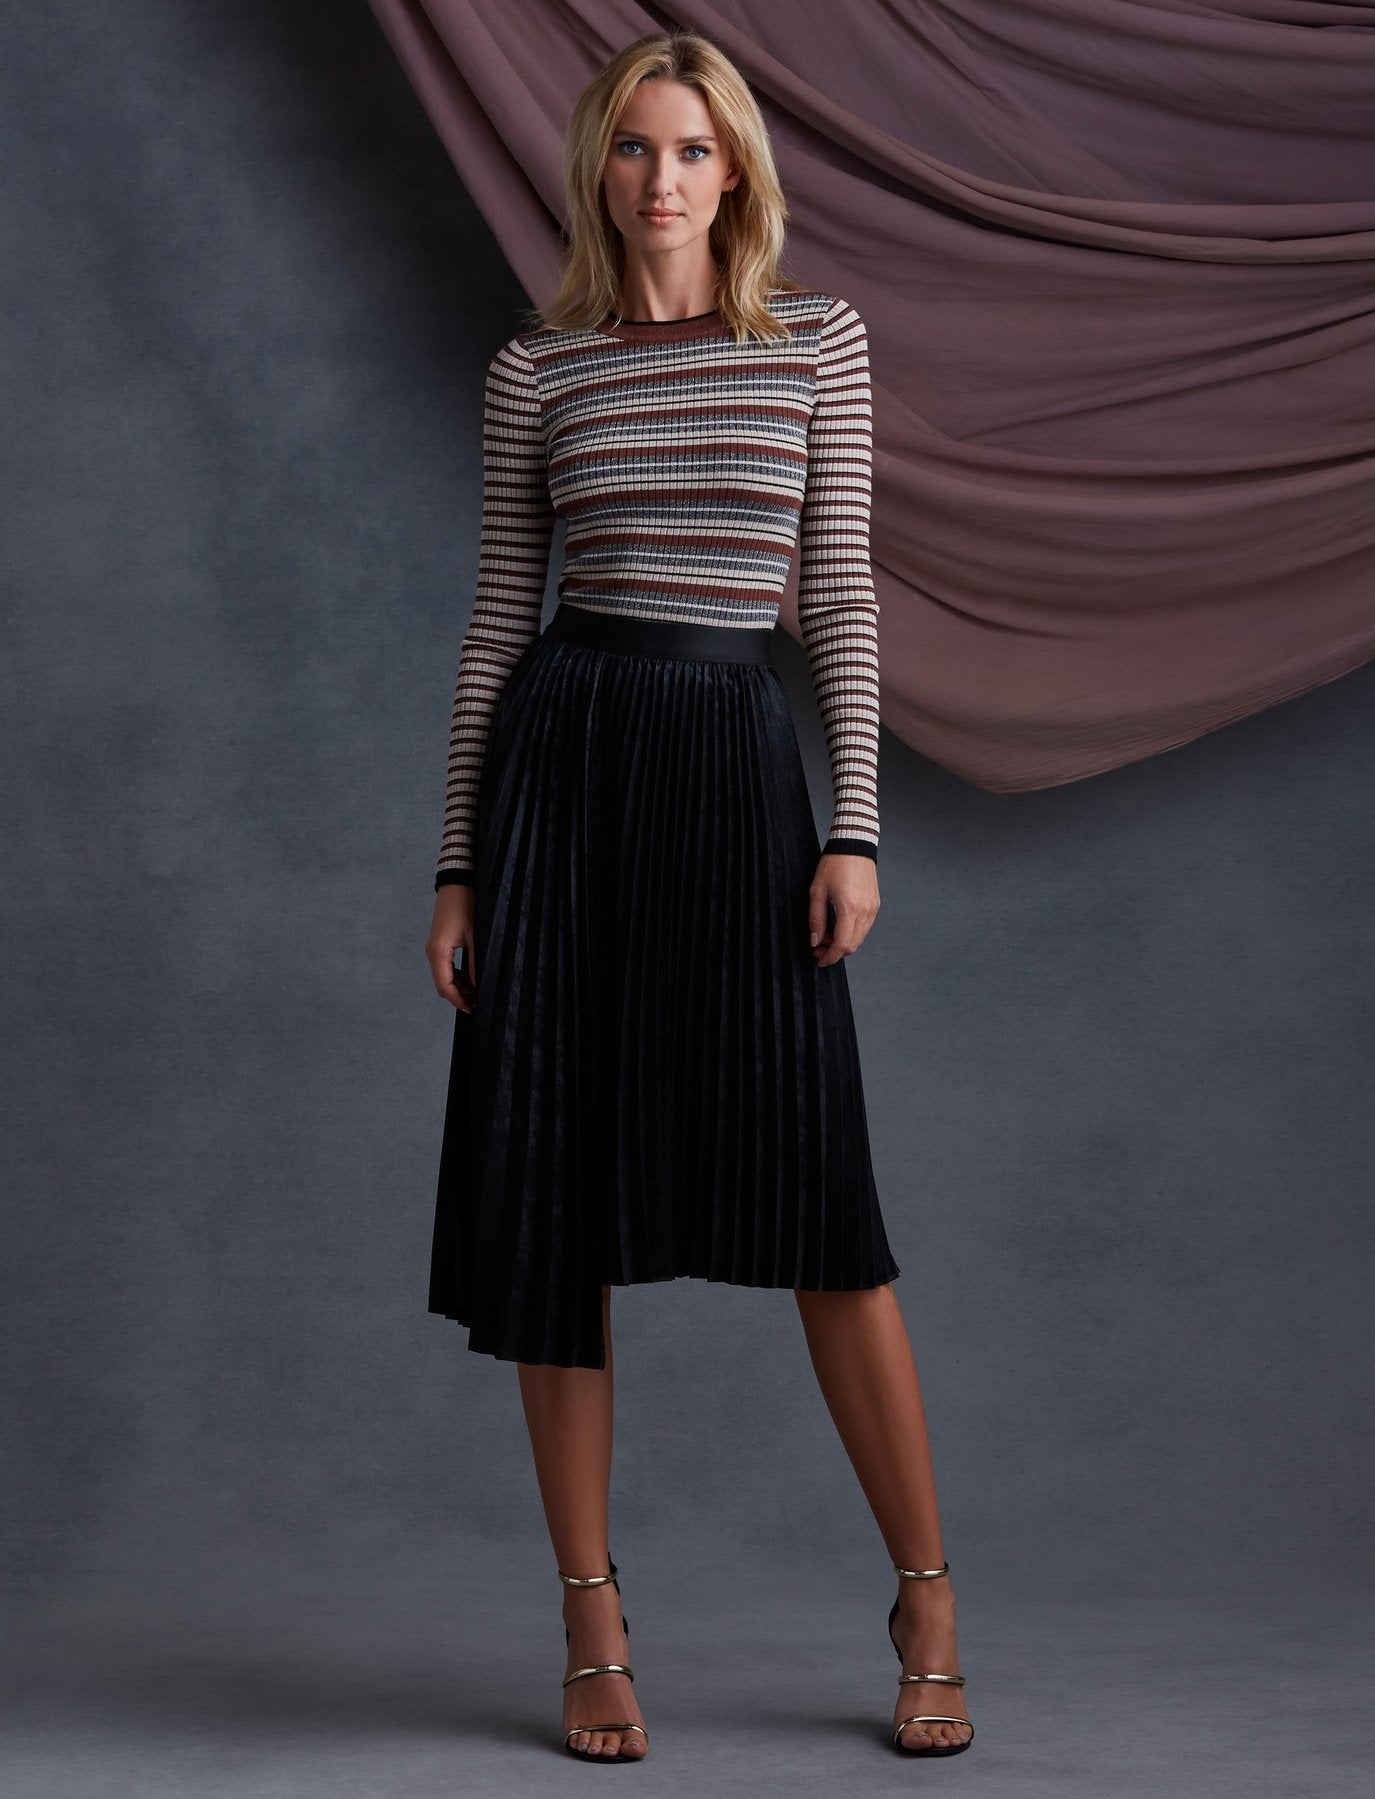 Rothchild Pleated Skirt - Mulberry & Me Chicago Boutique